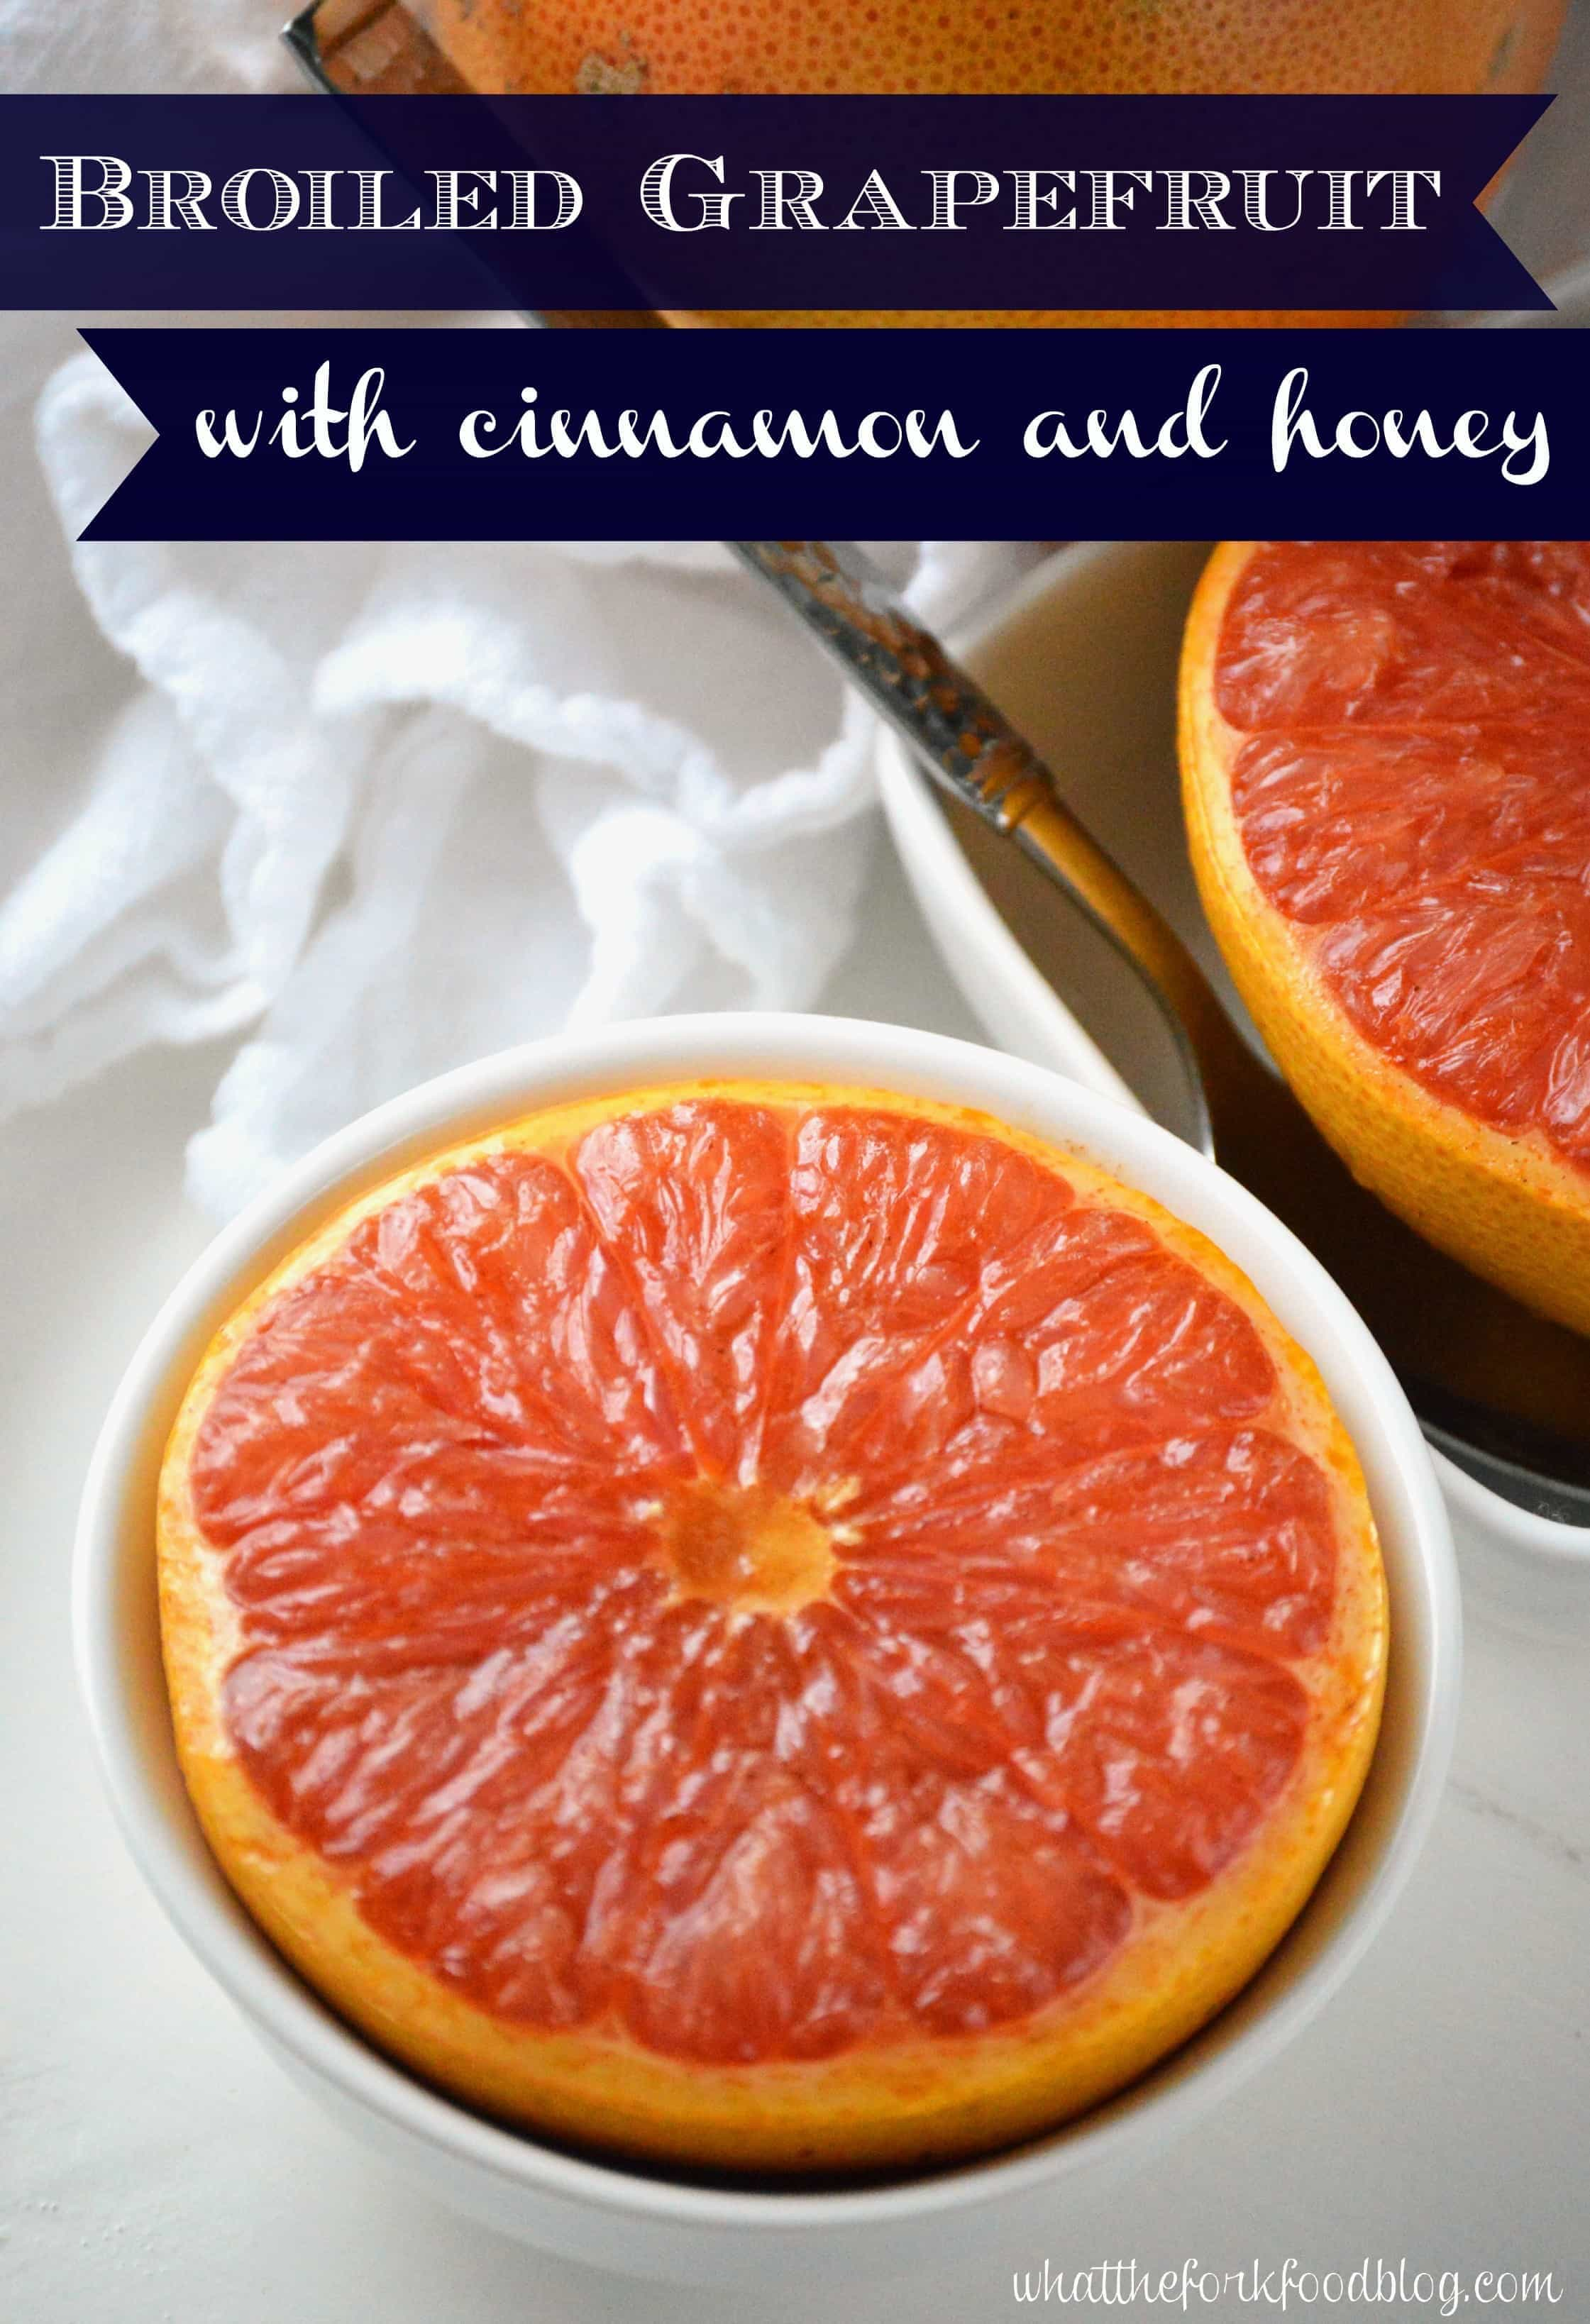 Broiled Grapefruit with Cinnamon and Honey - What the Fork Food Blog